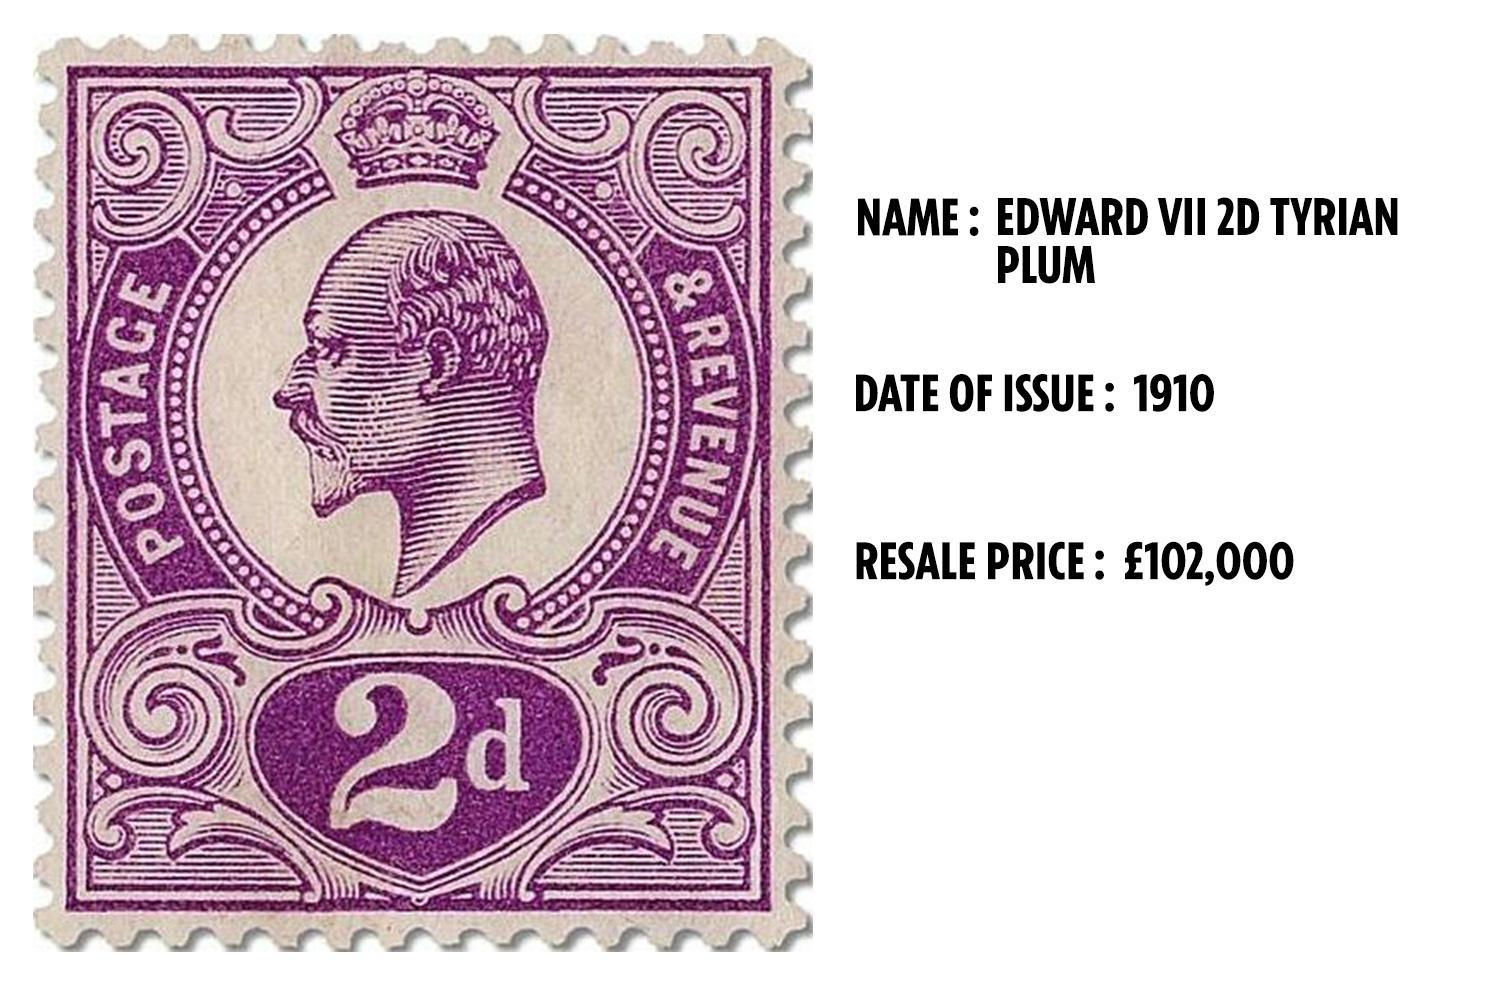 The majority of these stamps were destroyed when the King pictured on them died